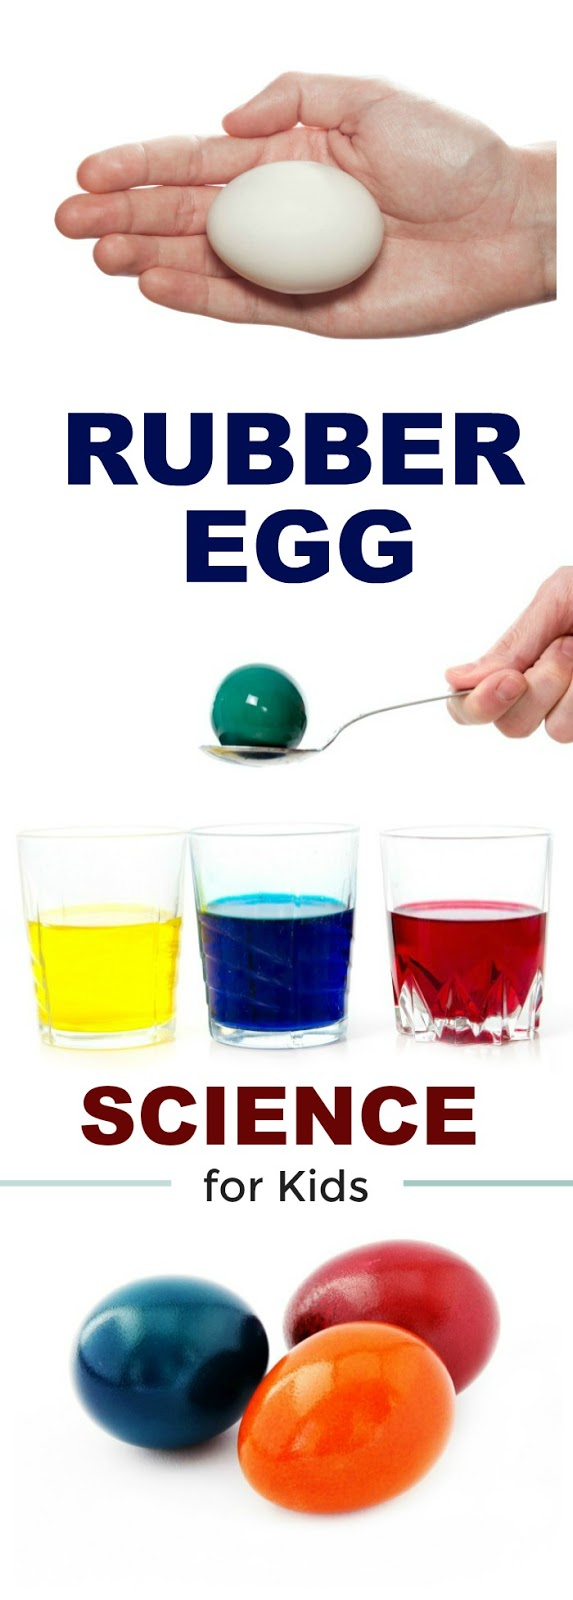 AWESOME KID SCIENCE (Rainbow egg experiment)  #rainbowexperimentsforkids #rainbowexperiment #rainboweggs #eggexperimentsforkids #eggexperiments #eggexperimentsforkidsvinegar #scienceexperimentskids #scienceforkids  #kidsscienceexperiments #craftsforkids #experimentsforkids #preschoolactivities